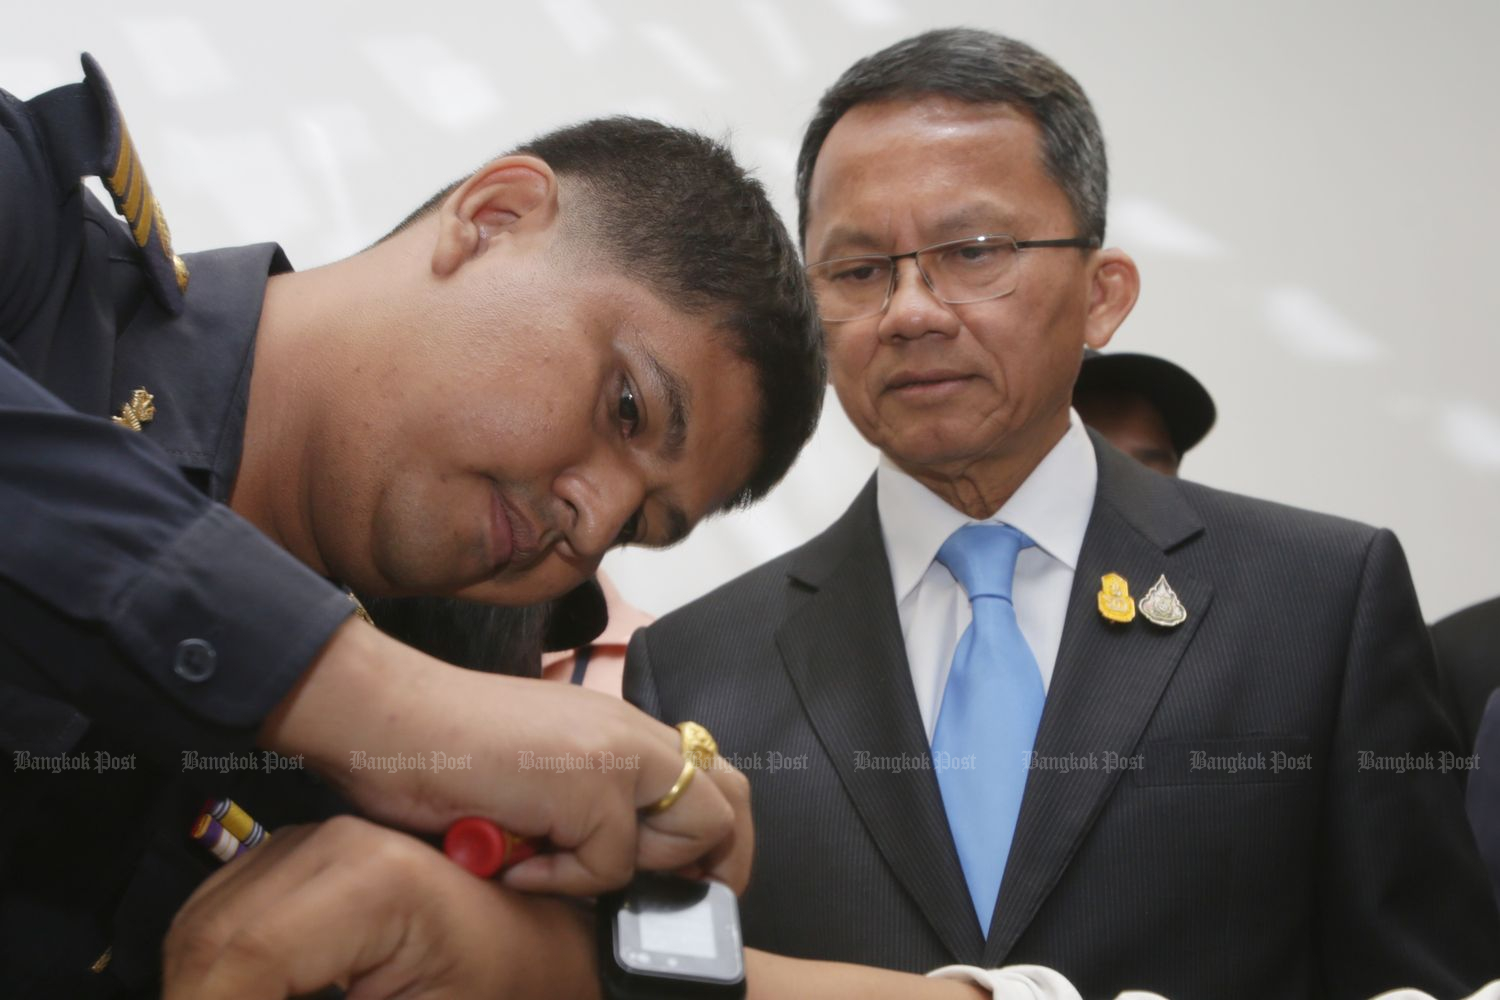 Justice Minister Somsak Thepsuthin watches as an official demonstrate the use of an electronic monitoring bracelet at the ministry on Friday following complaints the device can be removed and put back on. (Photo by Apichit Jinakul)